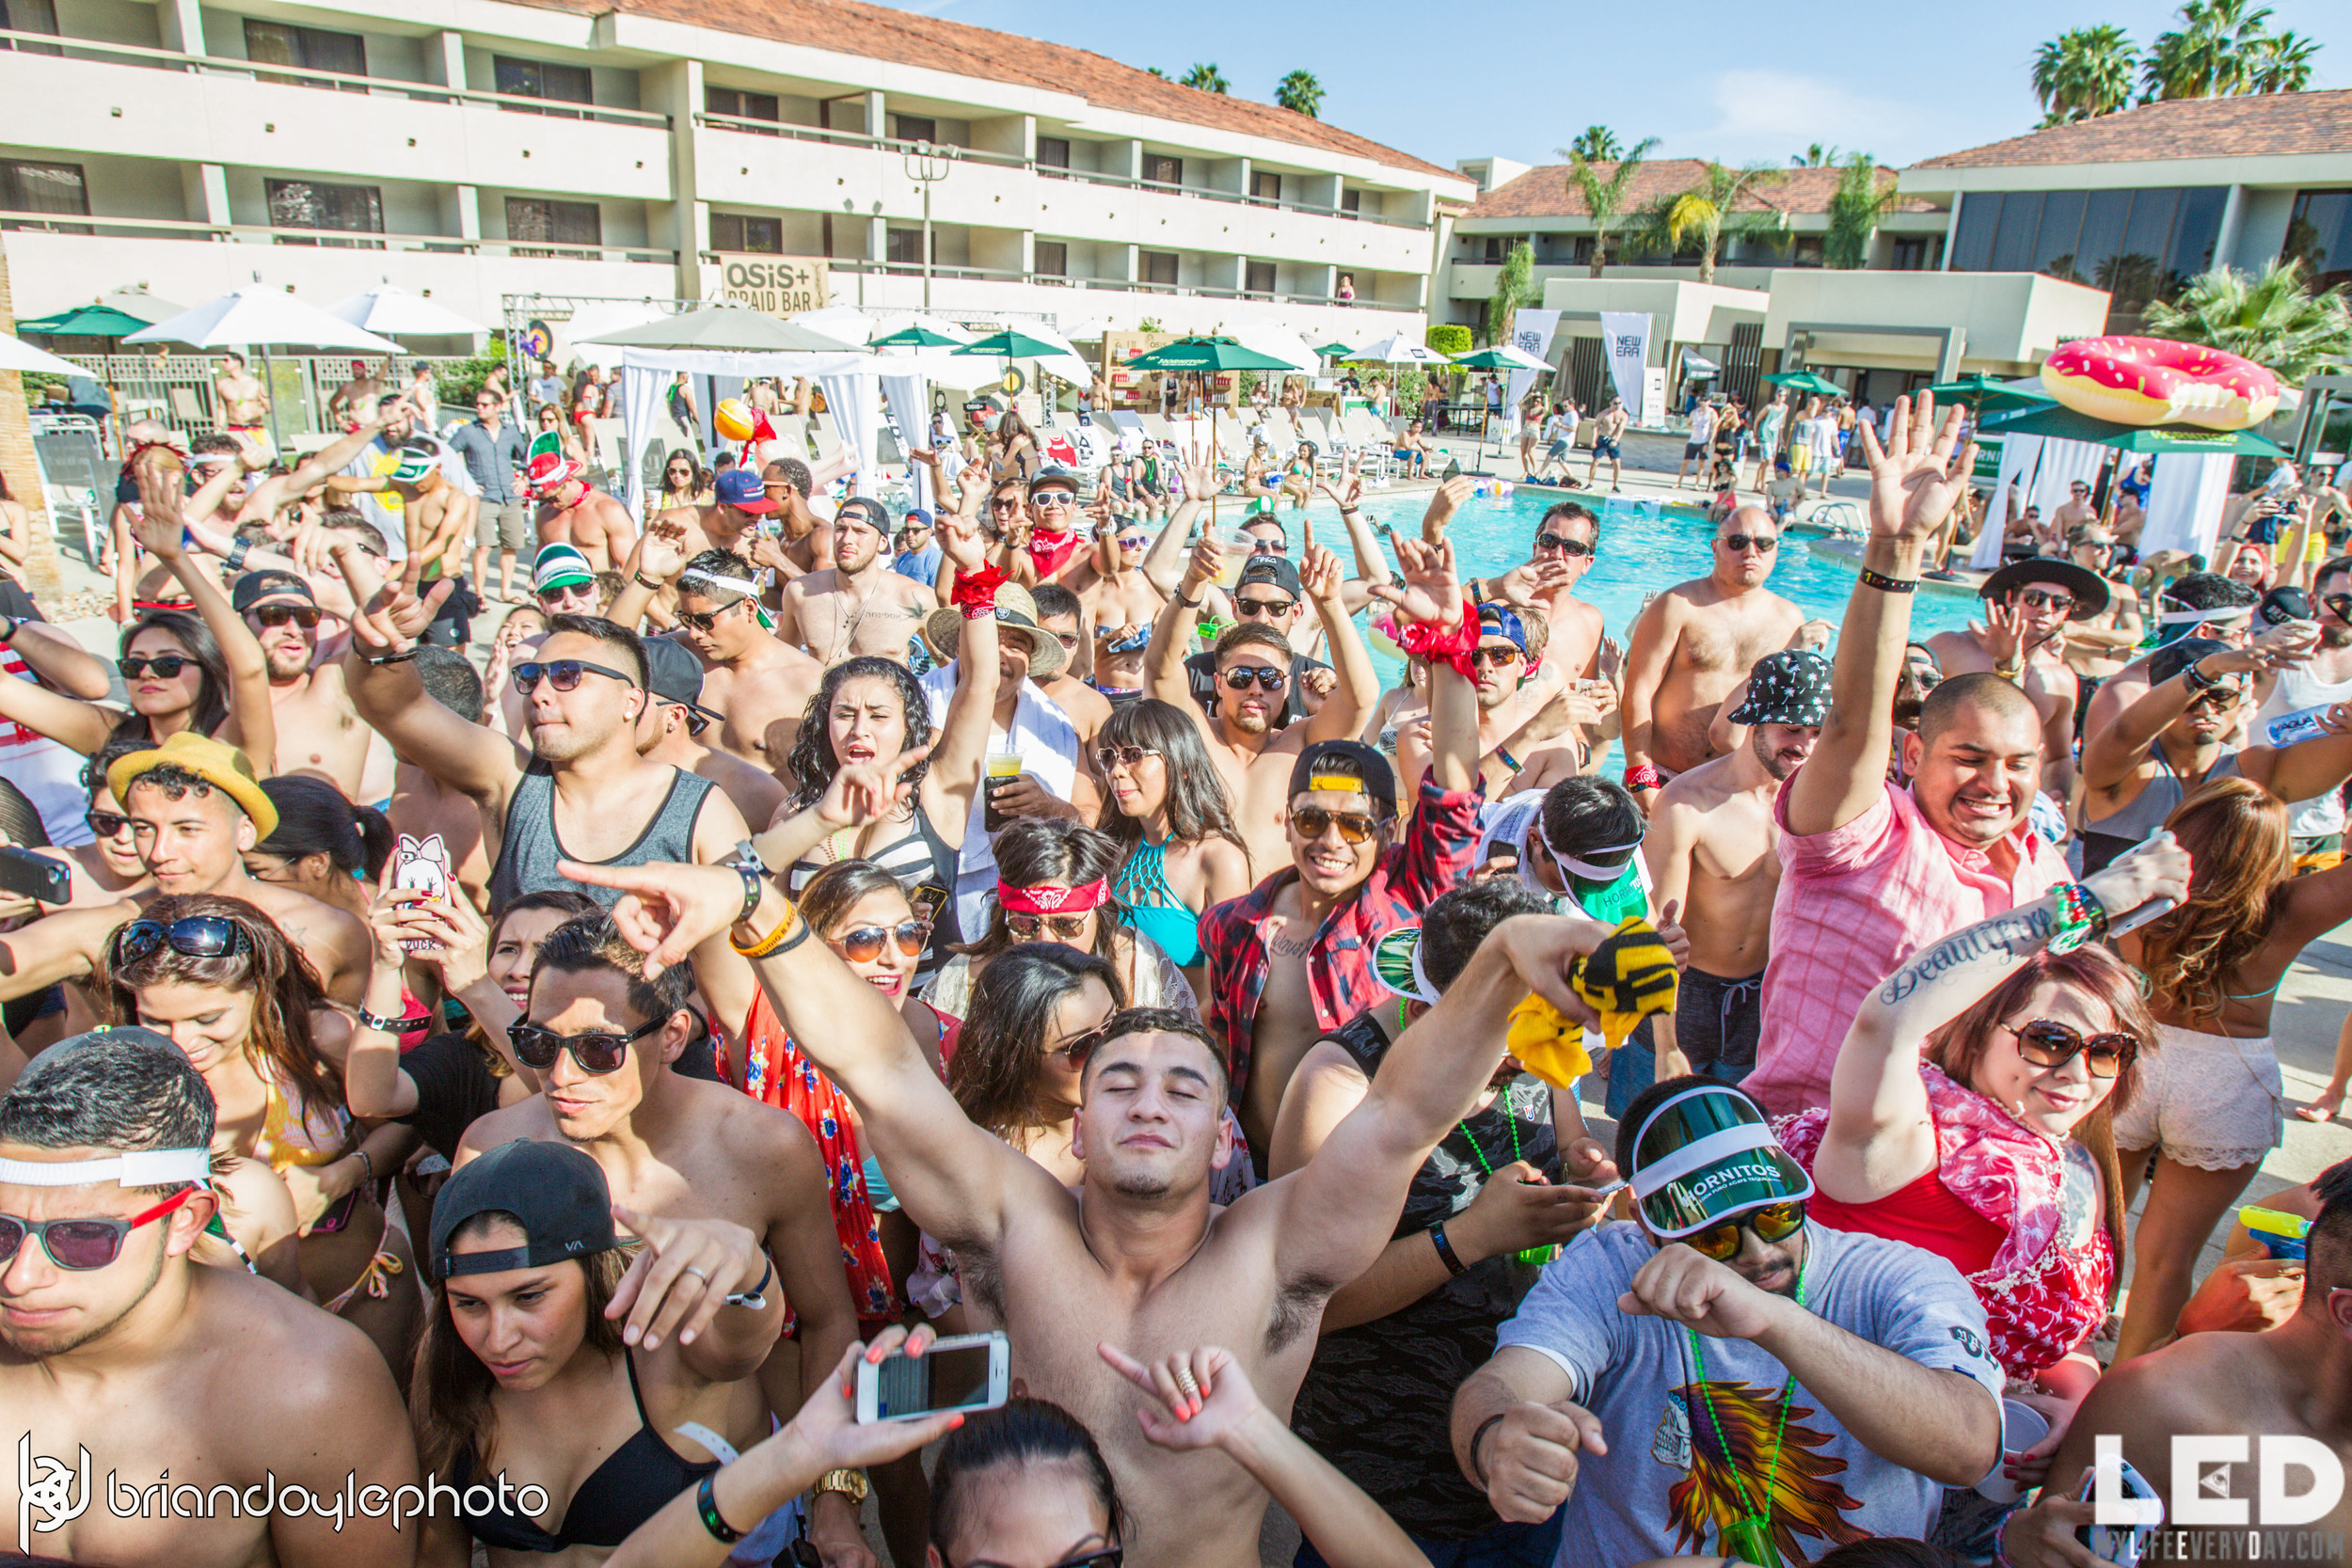 LED Day Club Day 2  Deorro and Chris 04.10.2015-46.jpg